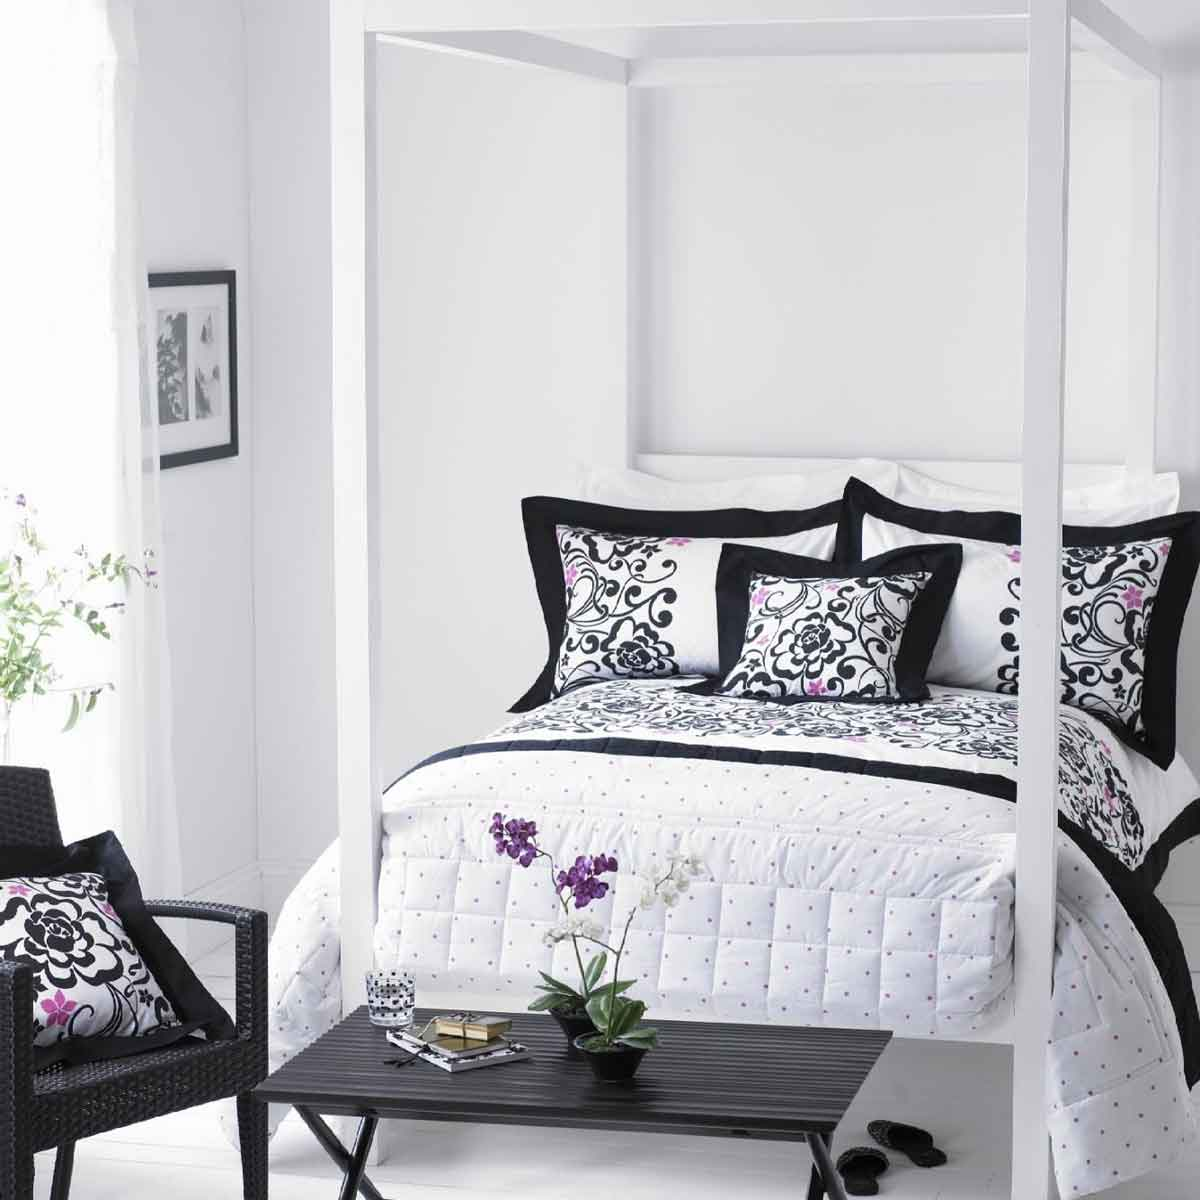 Black and white bedrooms designs home design inside Black and white bedroom decor